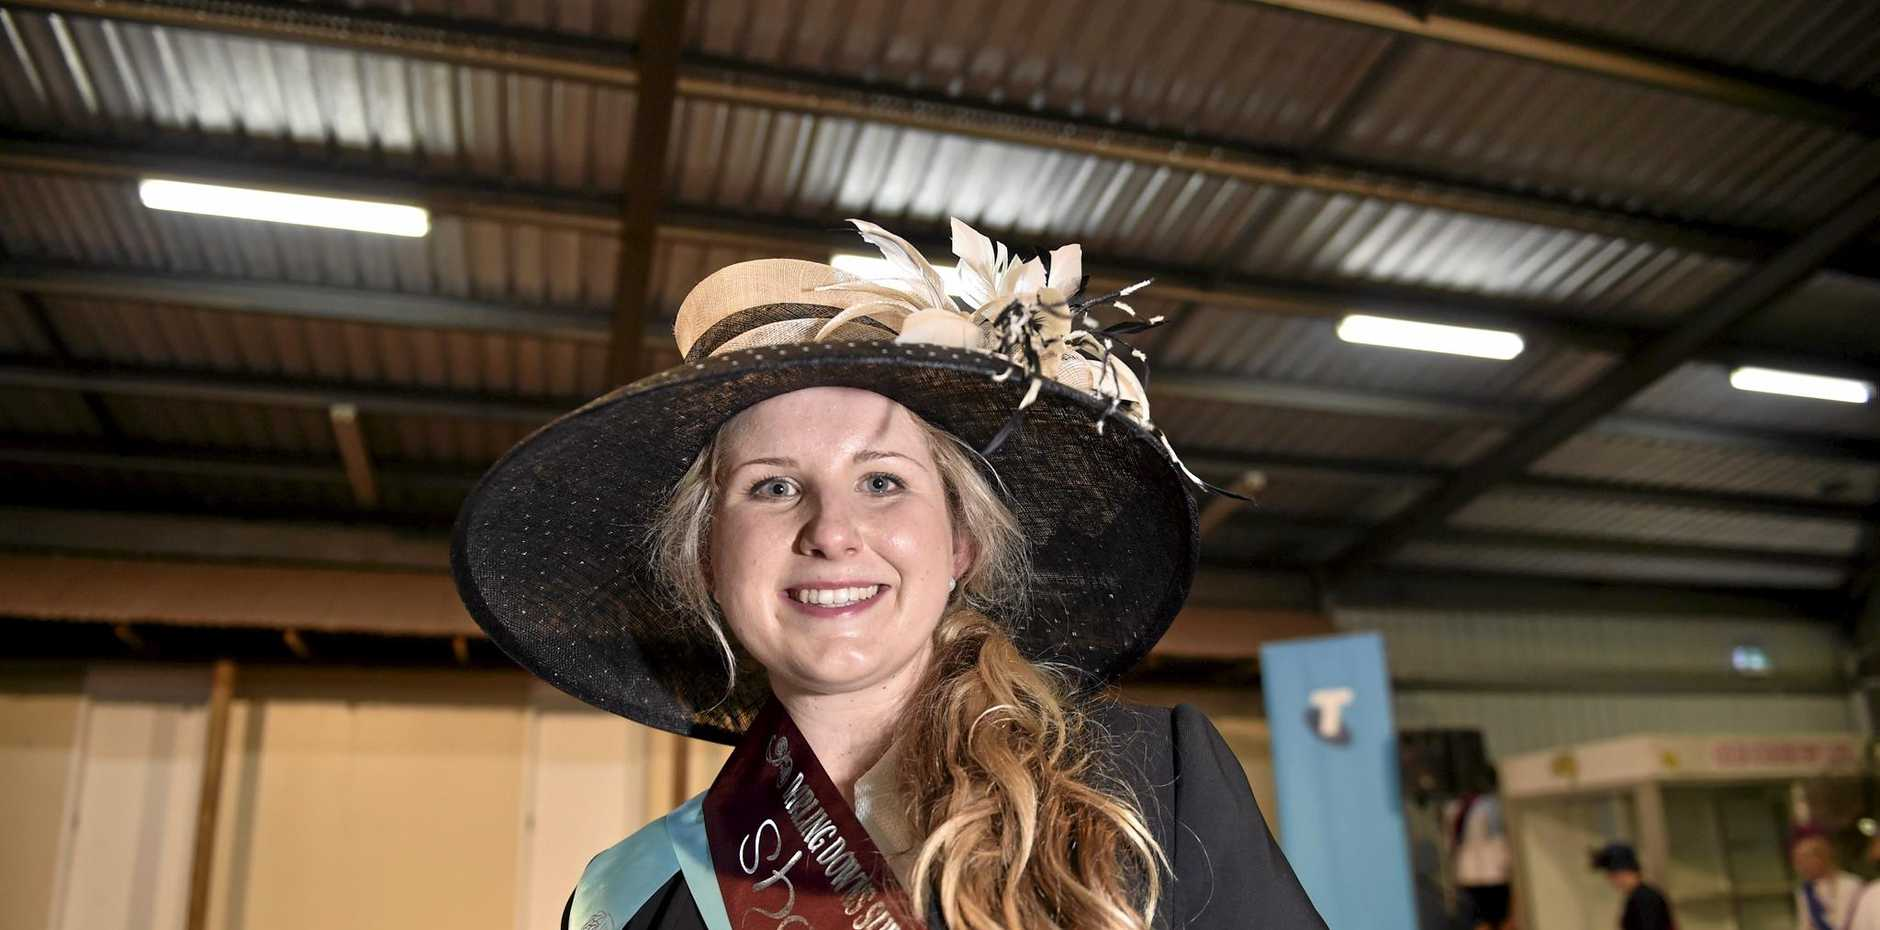 Dalby showgirl, Annie Fulton, has been named as Miss Darling Downs Showgirl 2016 and will compete at the Ekka in Brisbane.